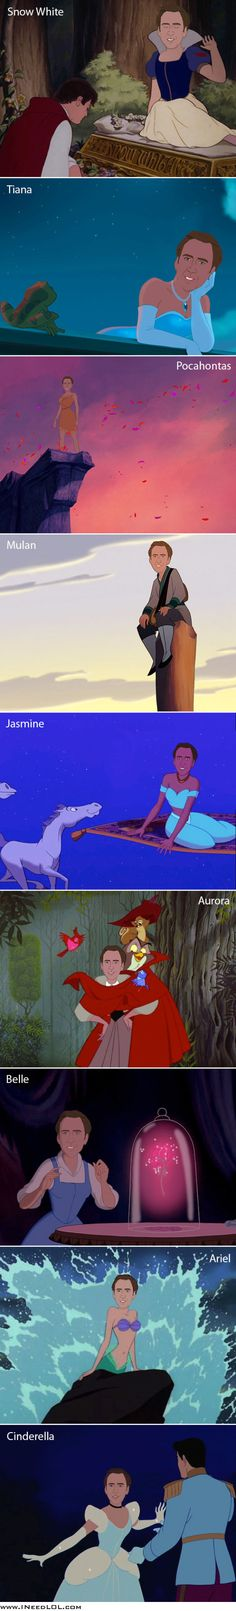 Nicolas Cage as various Disney princesses. Idk why I find this so hilarious. Lol